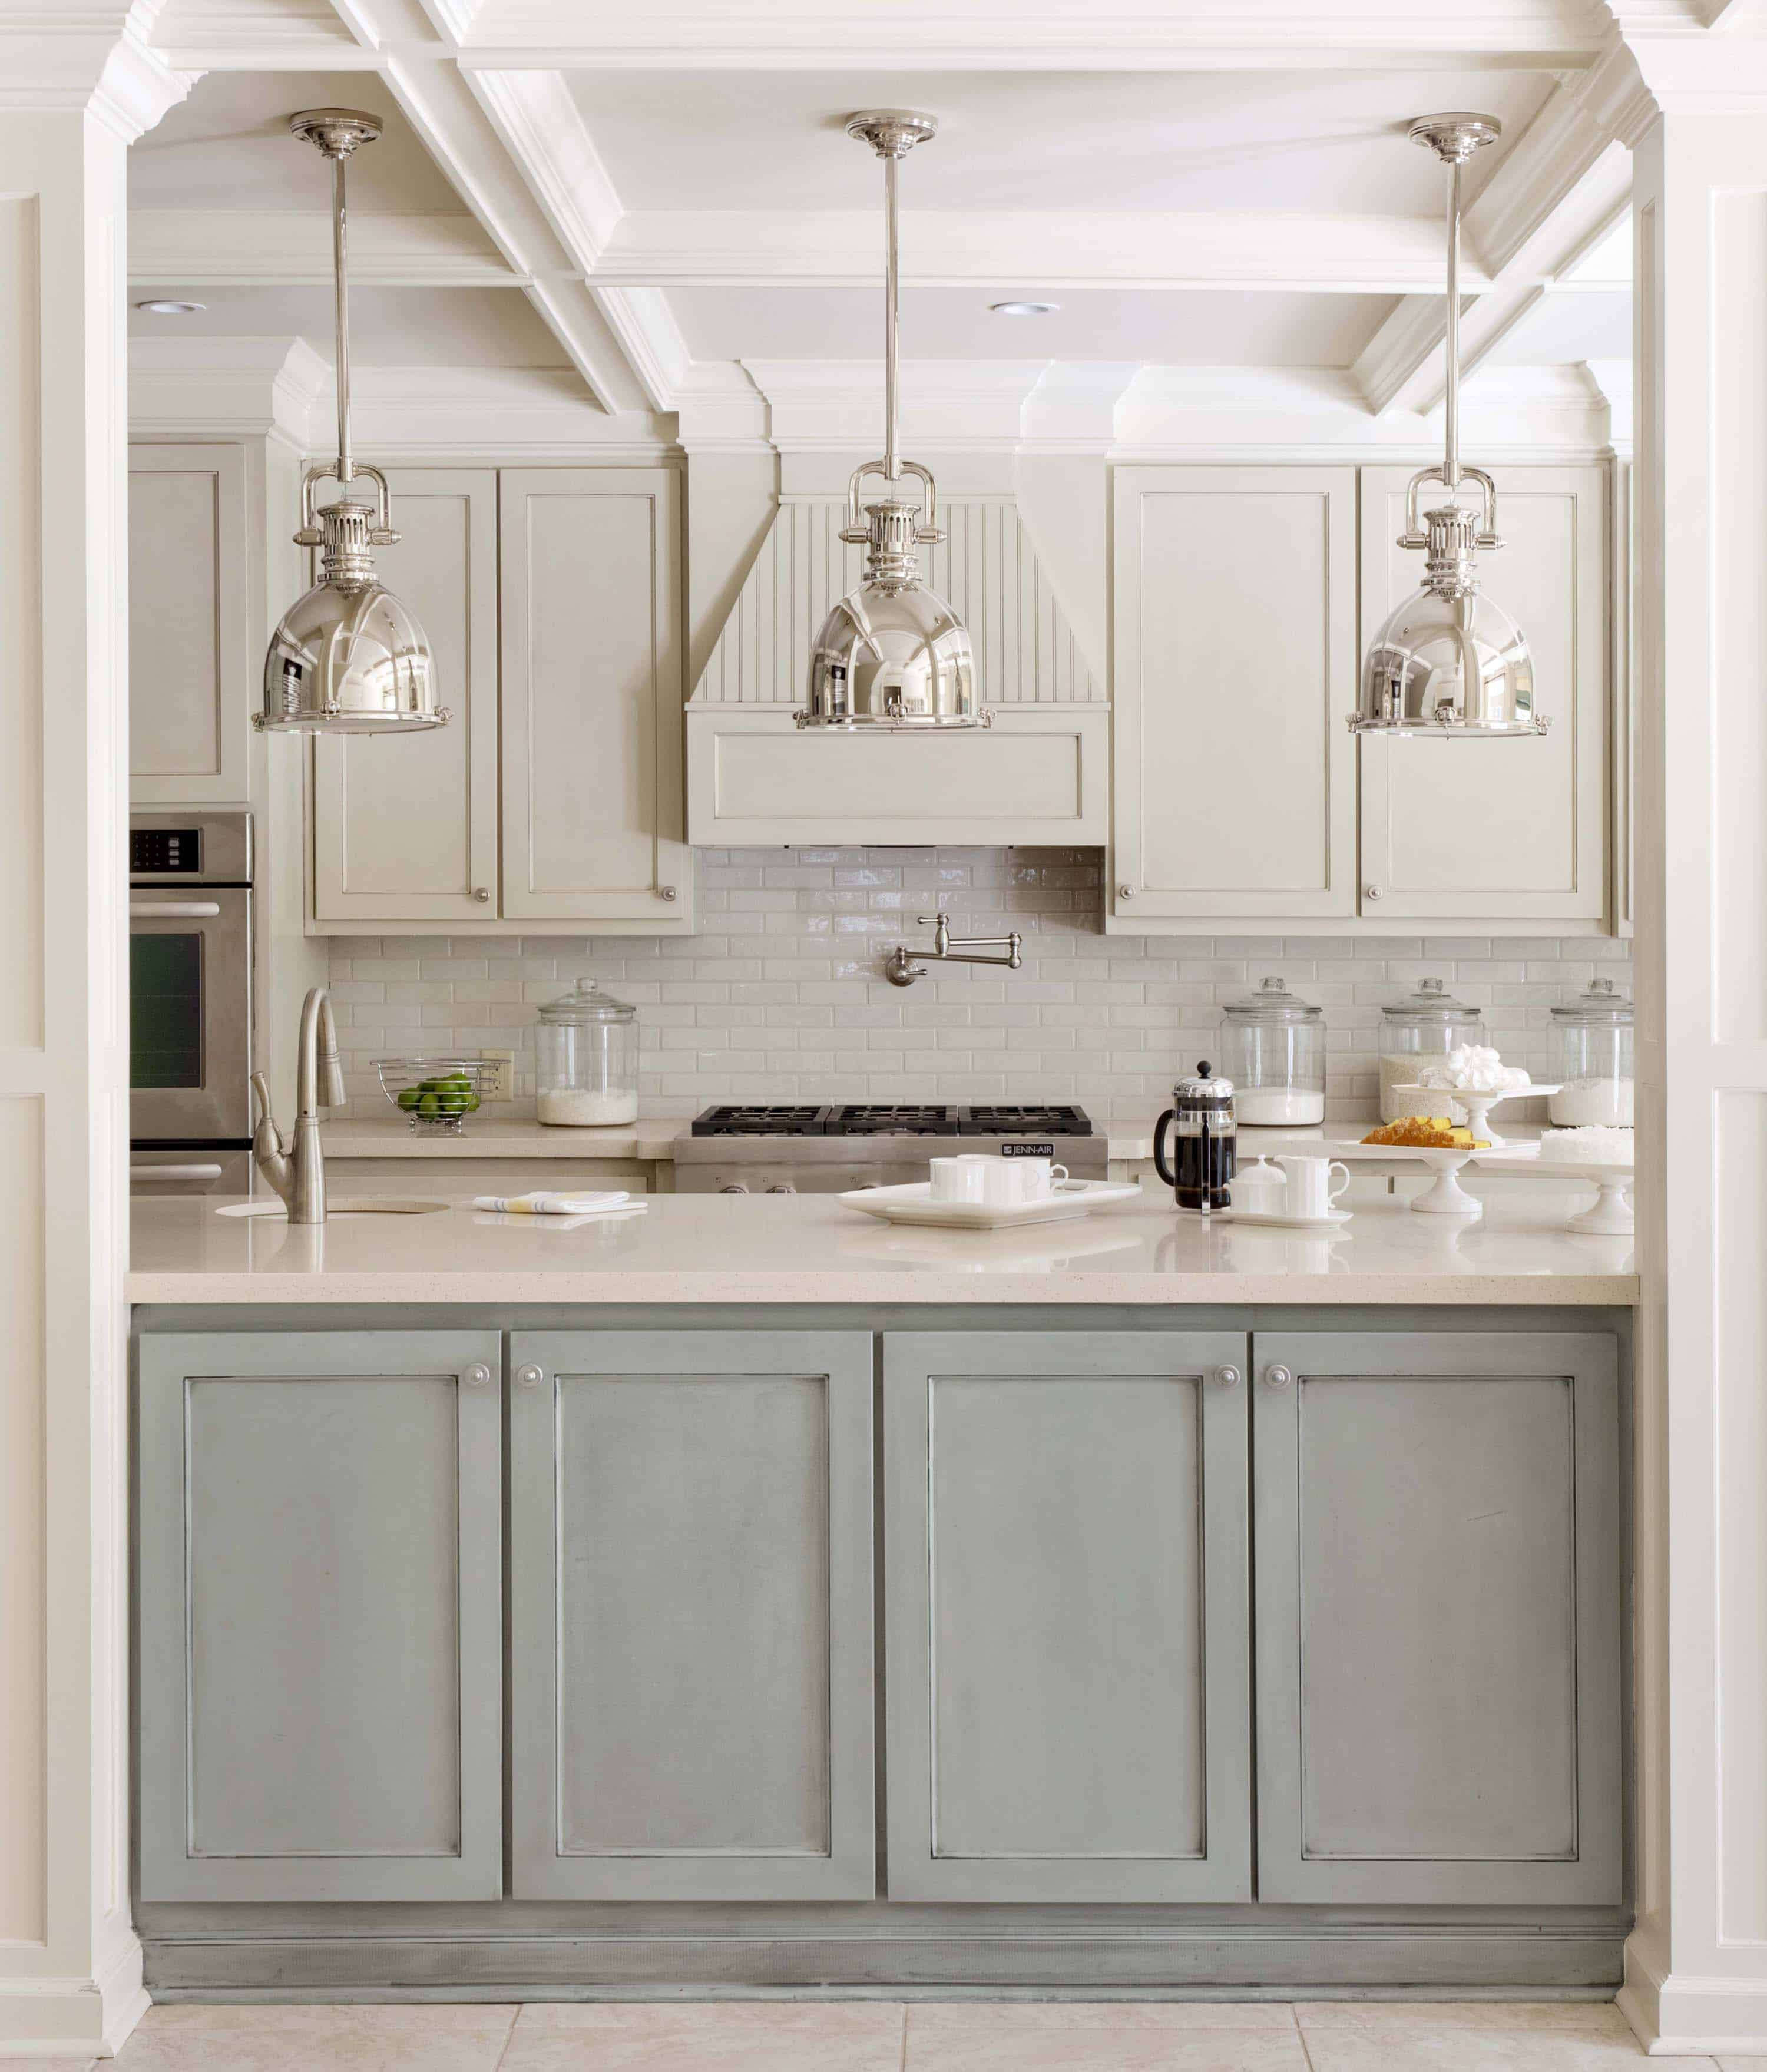 kitchen-furniture-great-two-tone-kitchen-furnishing-decors-with-gray-kitchen-cabinets-with-white-marble-top-as-well-as-chrome-funnel-kitchen-ceiling-lamp-in-contemporary-kitchen-designs-calmly-gray-k-